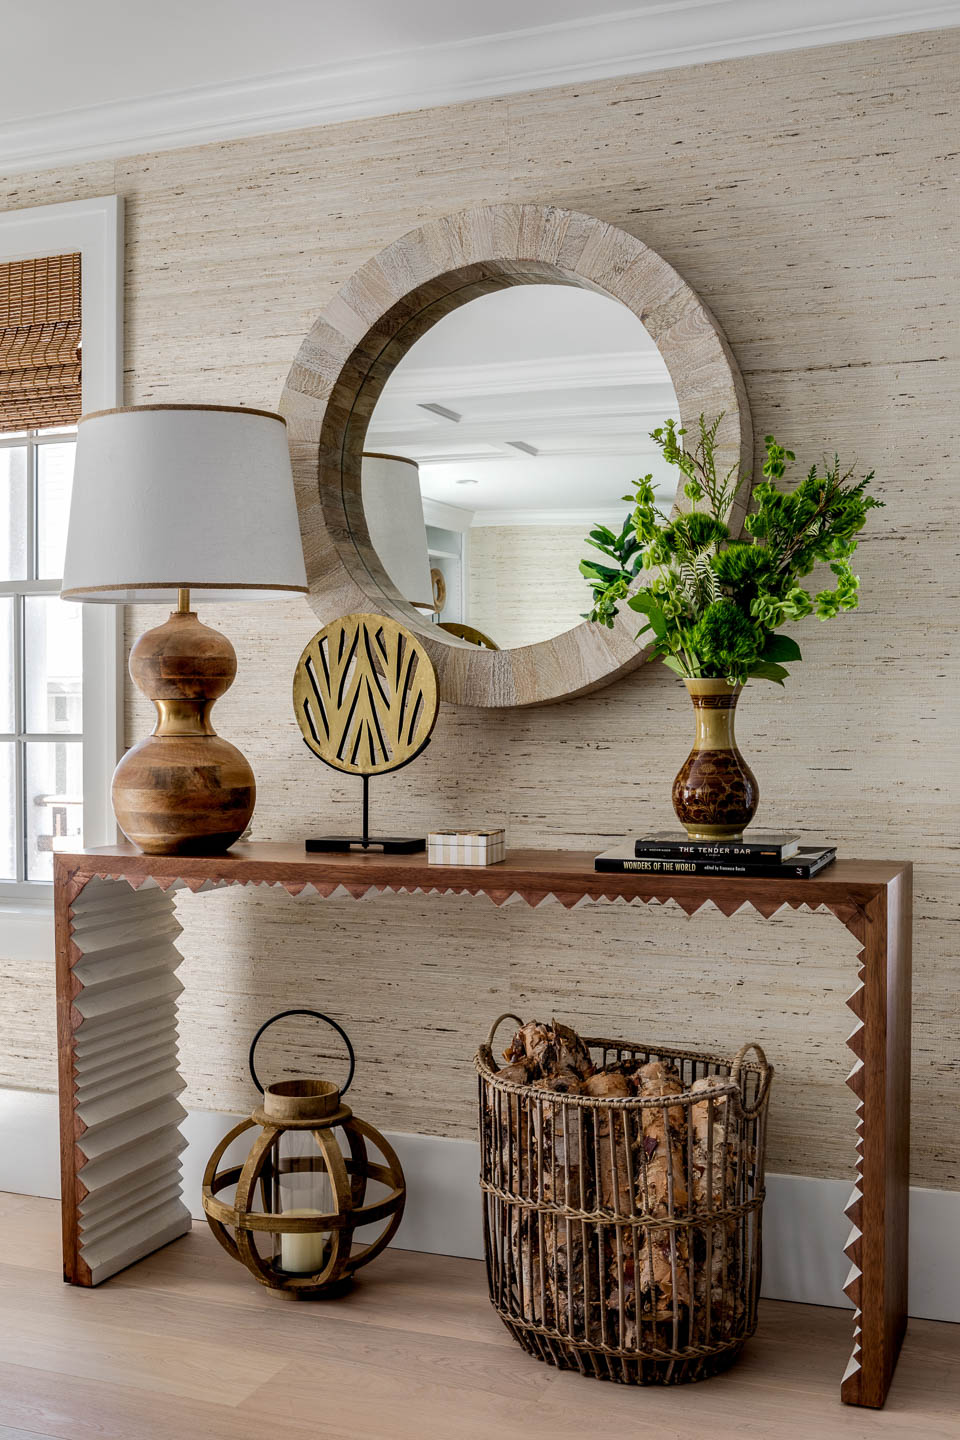 Newport, Rhode Island, Interior Design, console table, basket, round mirror, wallpaper